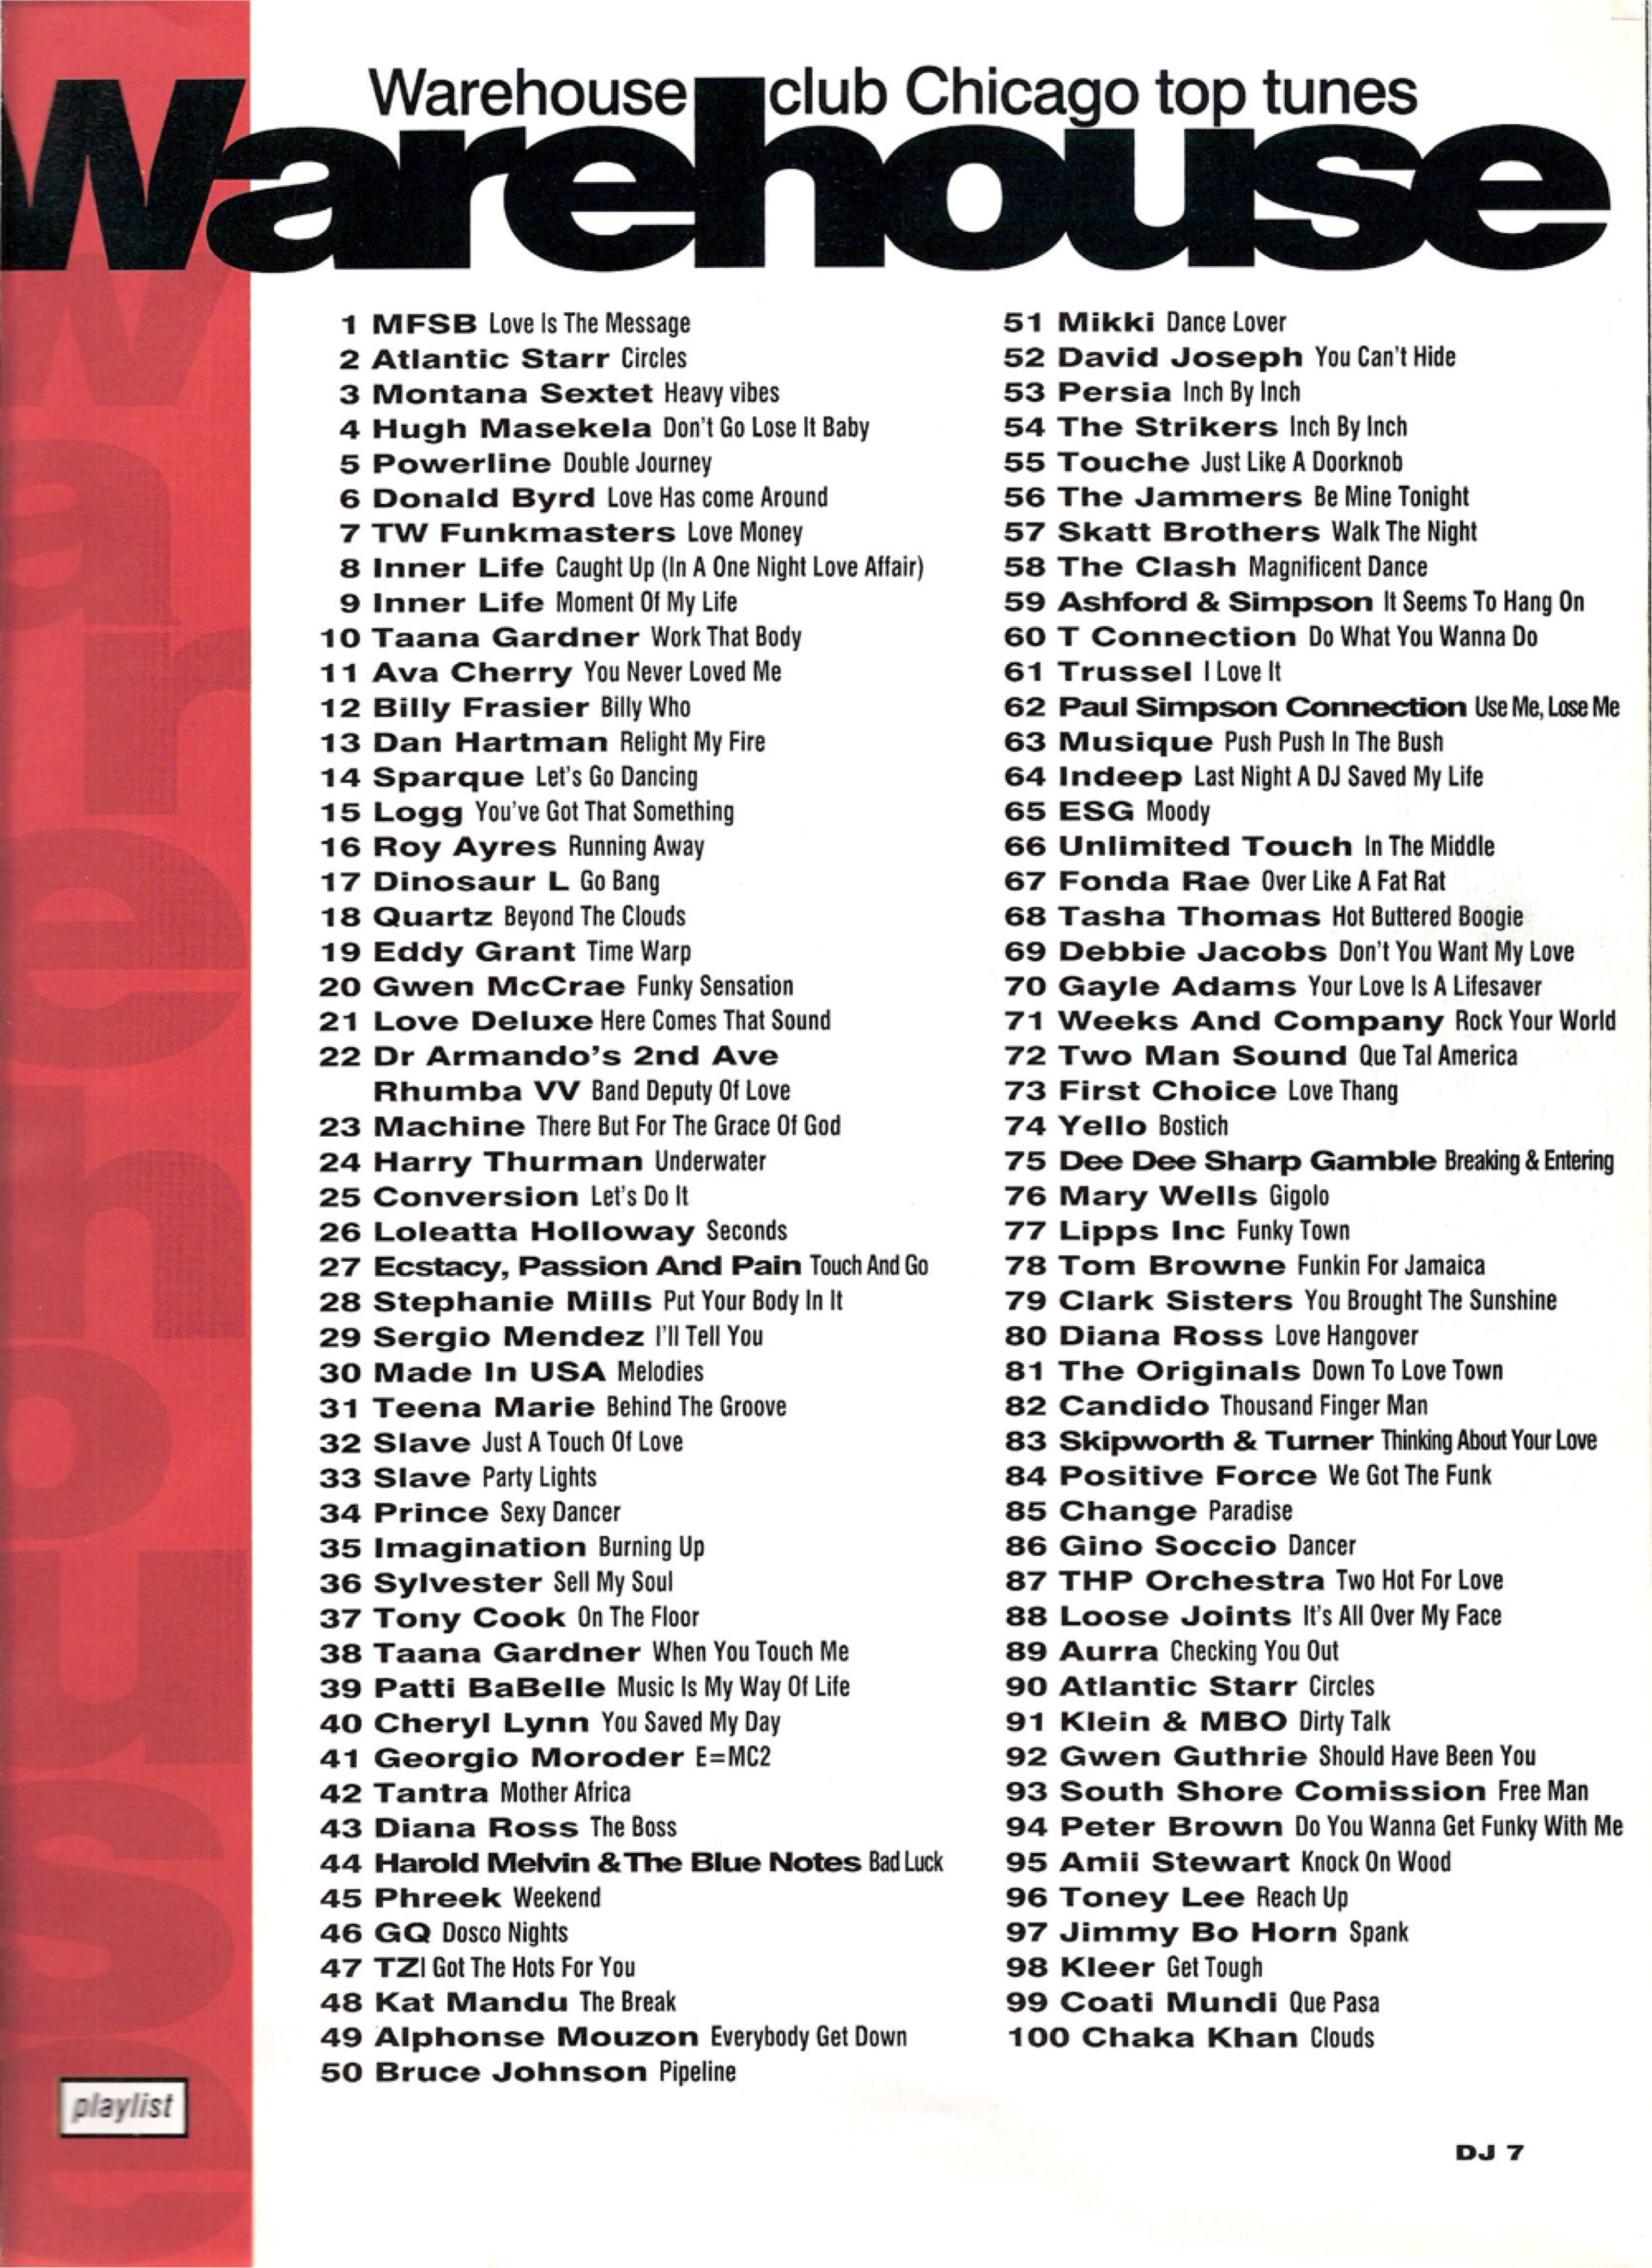 The Warehouse top 100 tunes from DJ Mag April 1993.